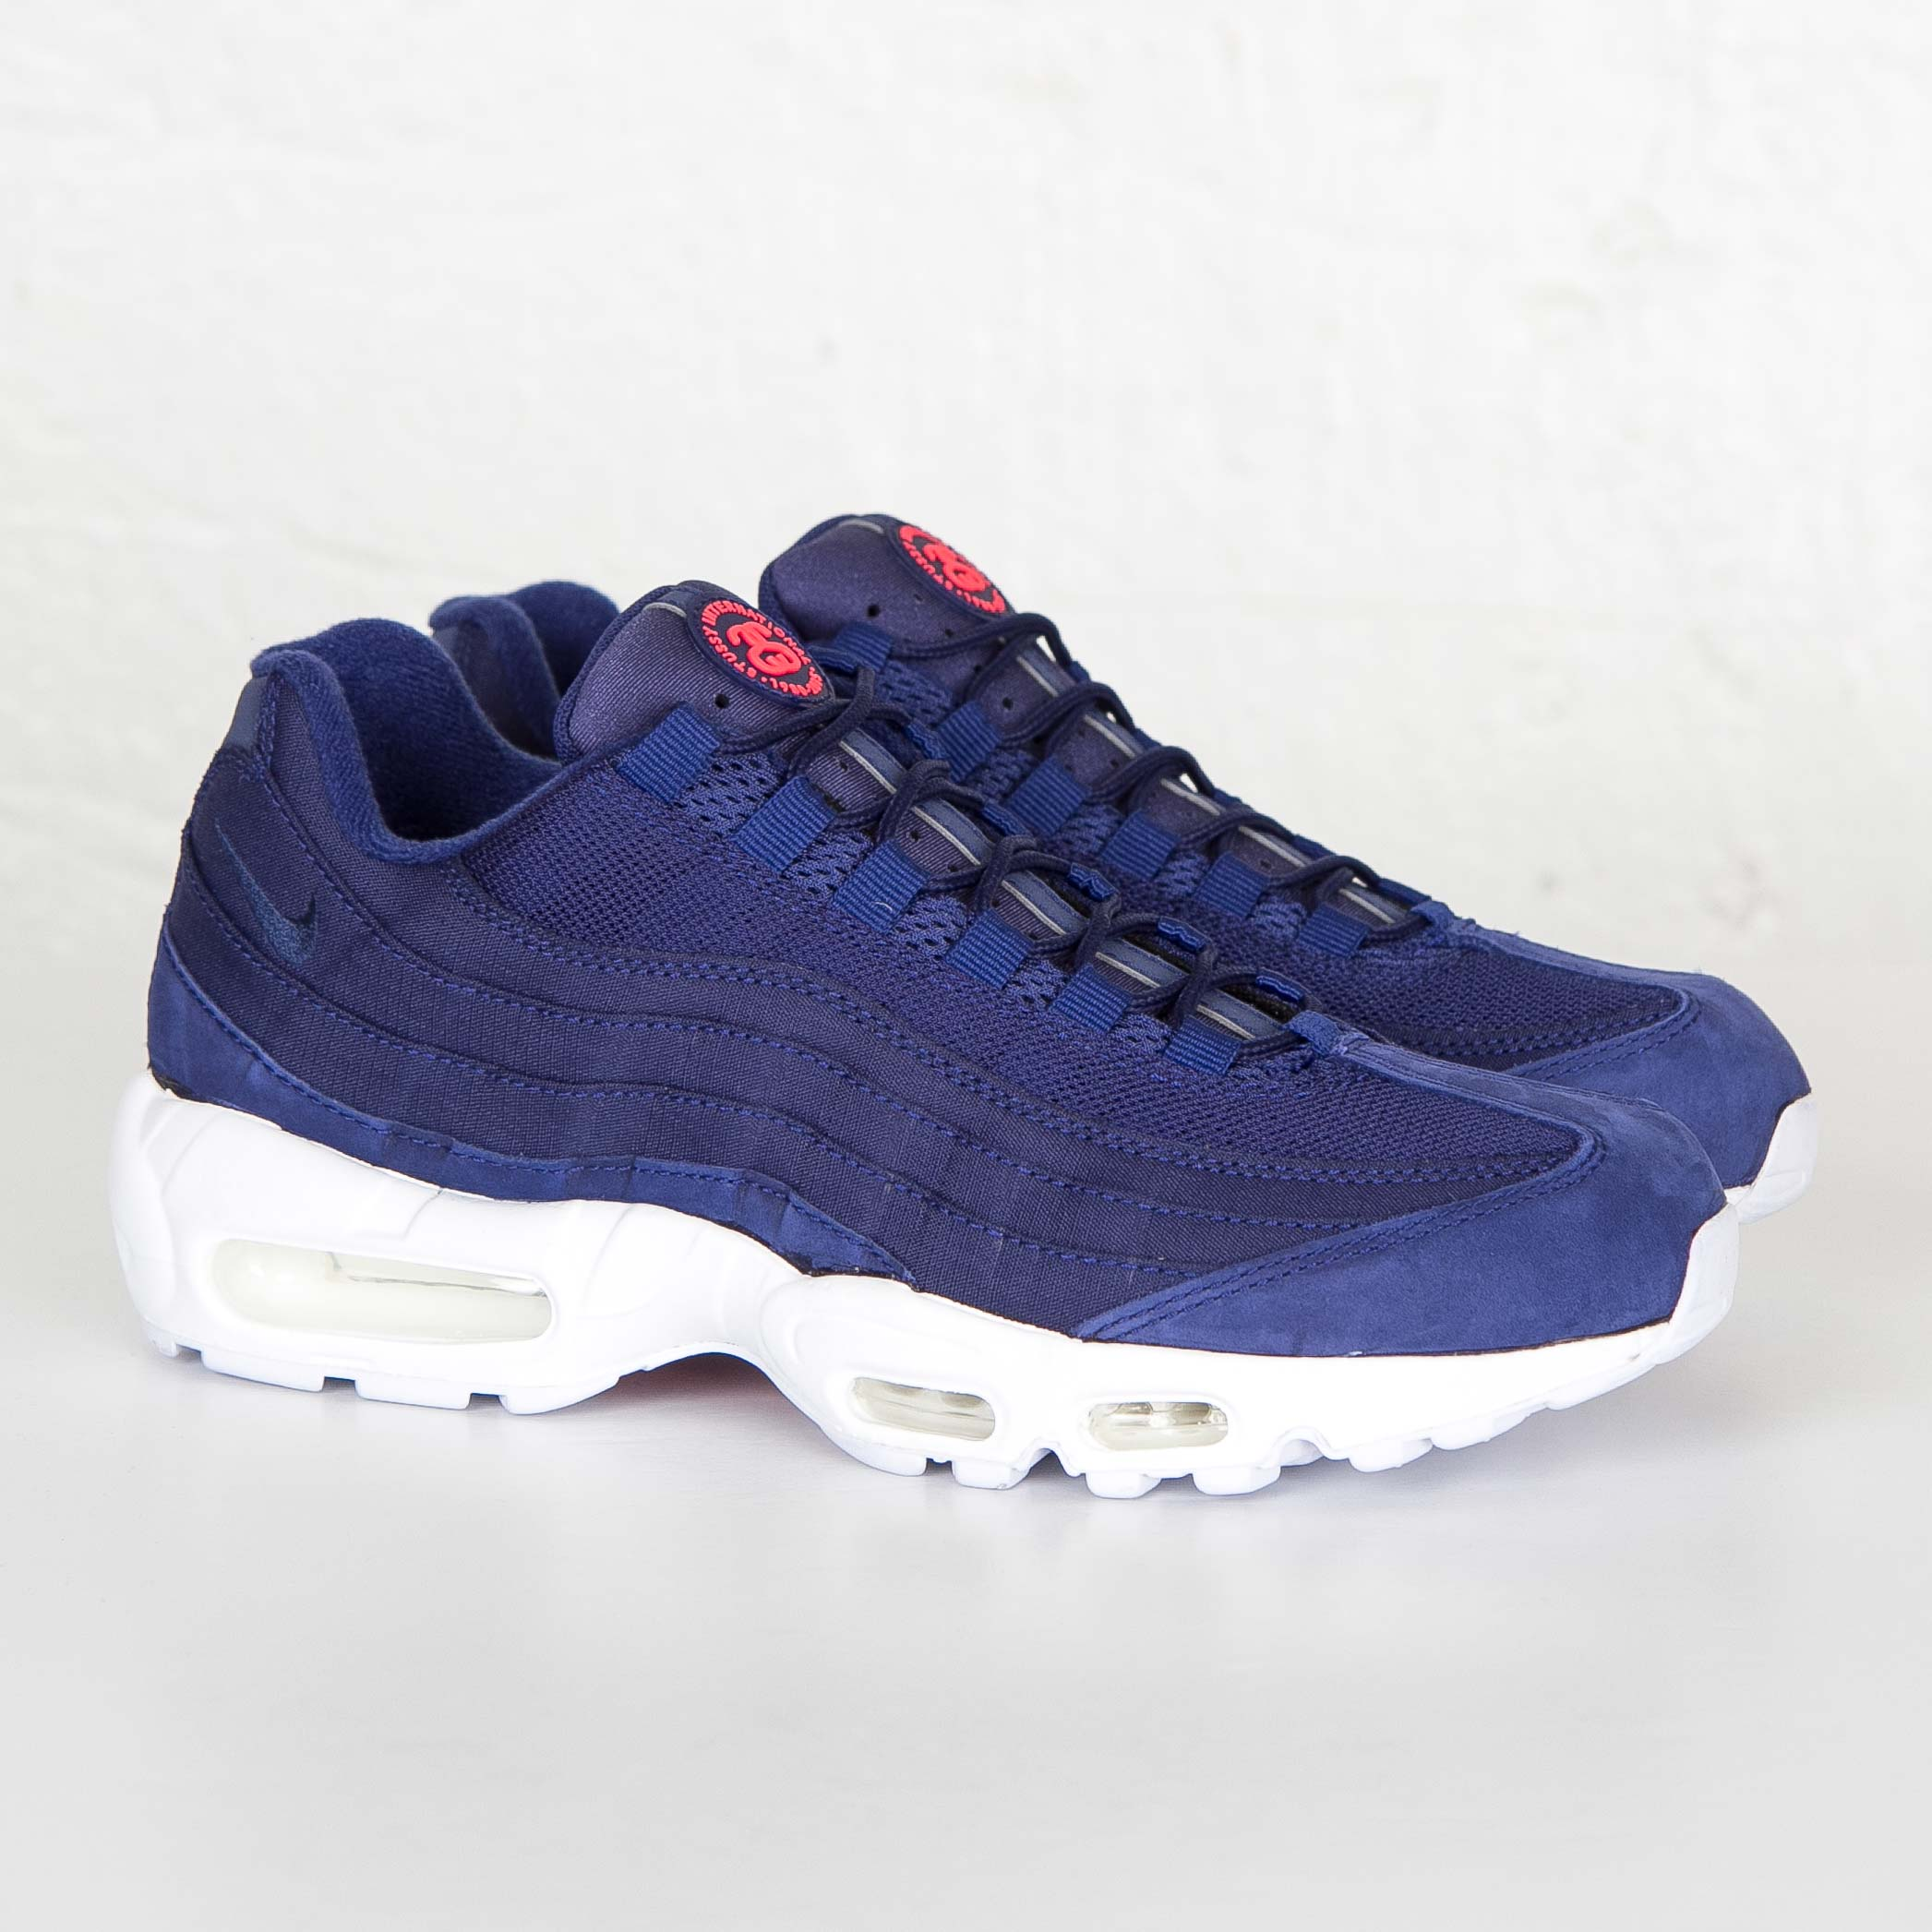 69f8bf6a88 Nike Air Max 95   Stussy - 834668-441 - Sneakersnstuff